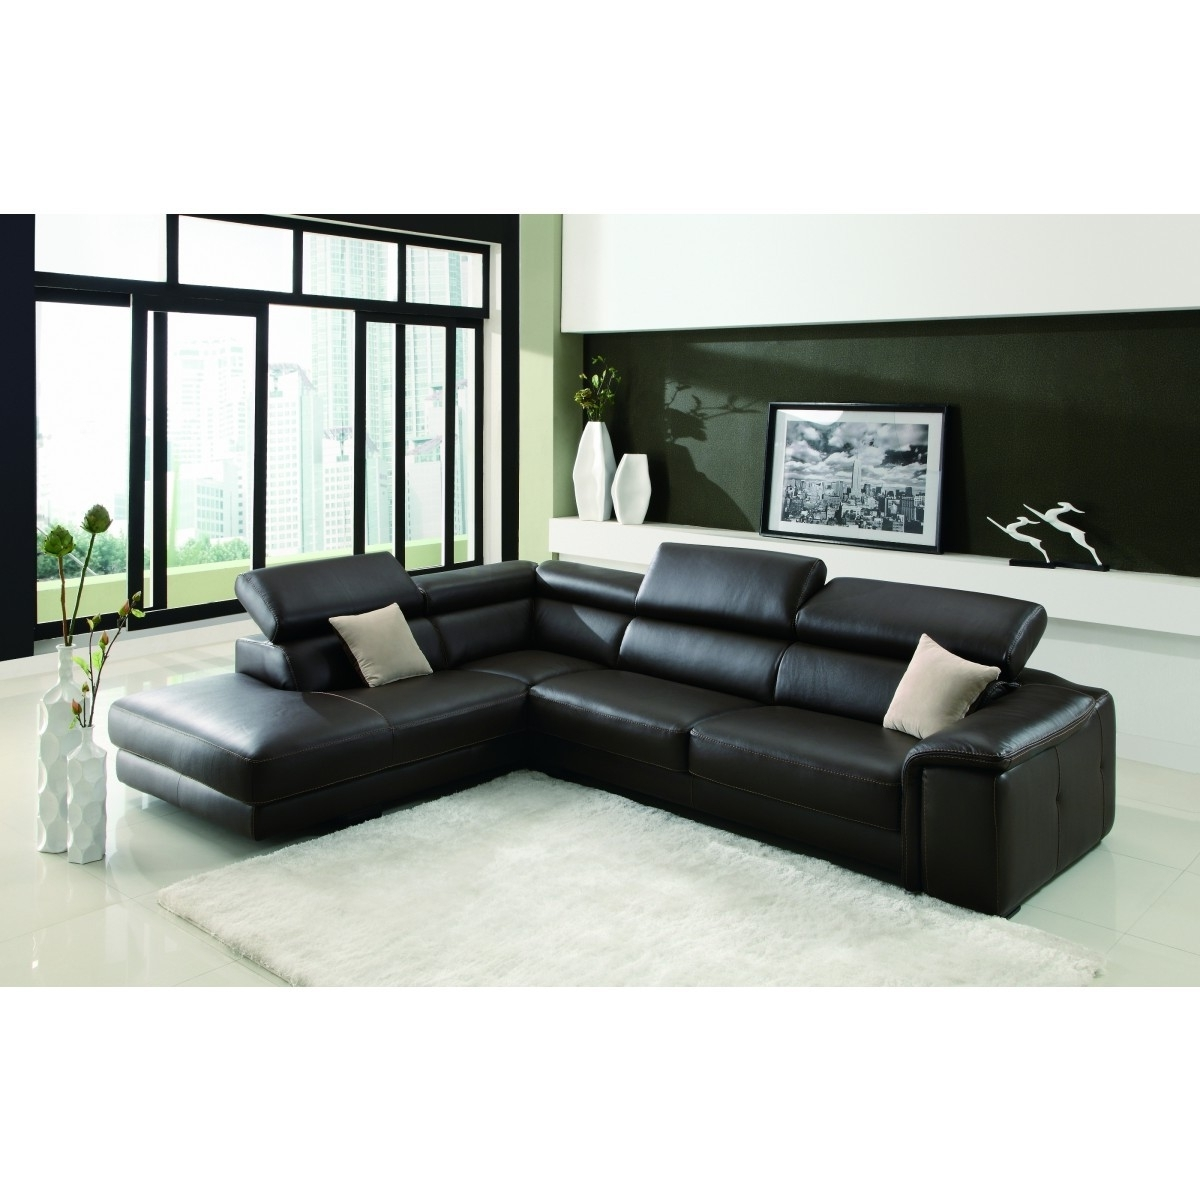 Most Current Nashua Nh Sectional Sofas Within Deon Sectional Sofacreative Furniture – Italmoda Furniture Store (View 13 of 15)